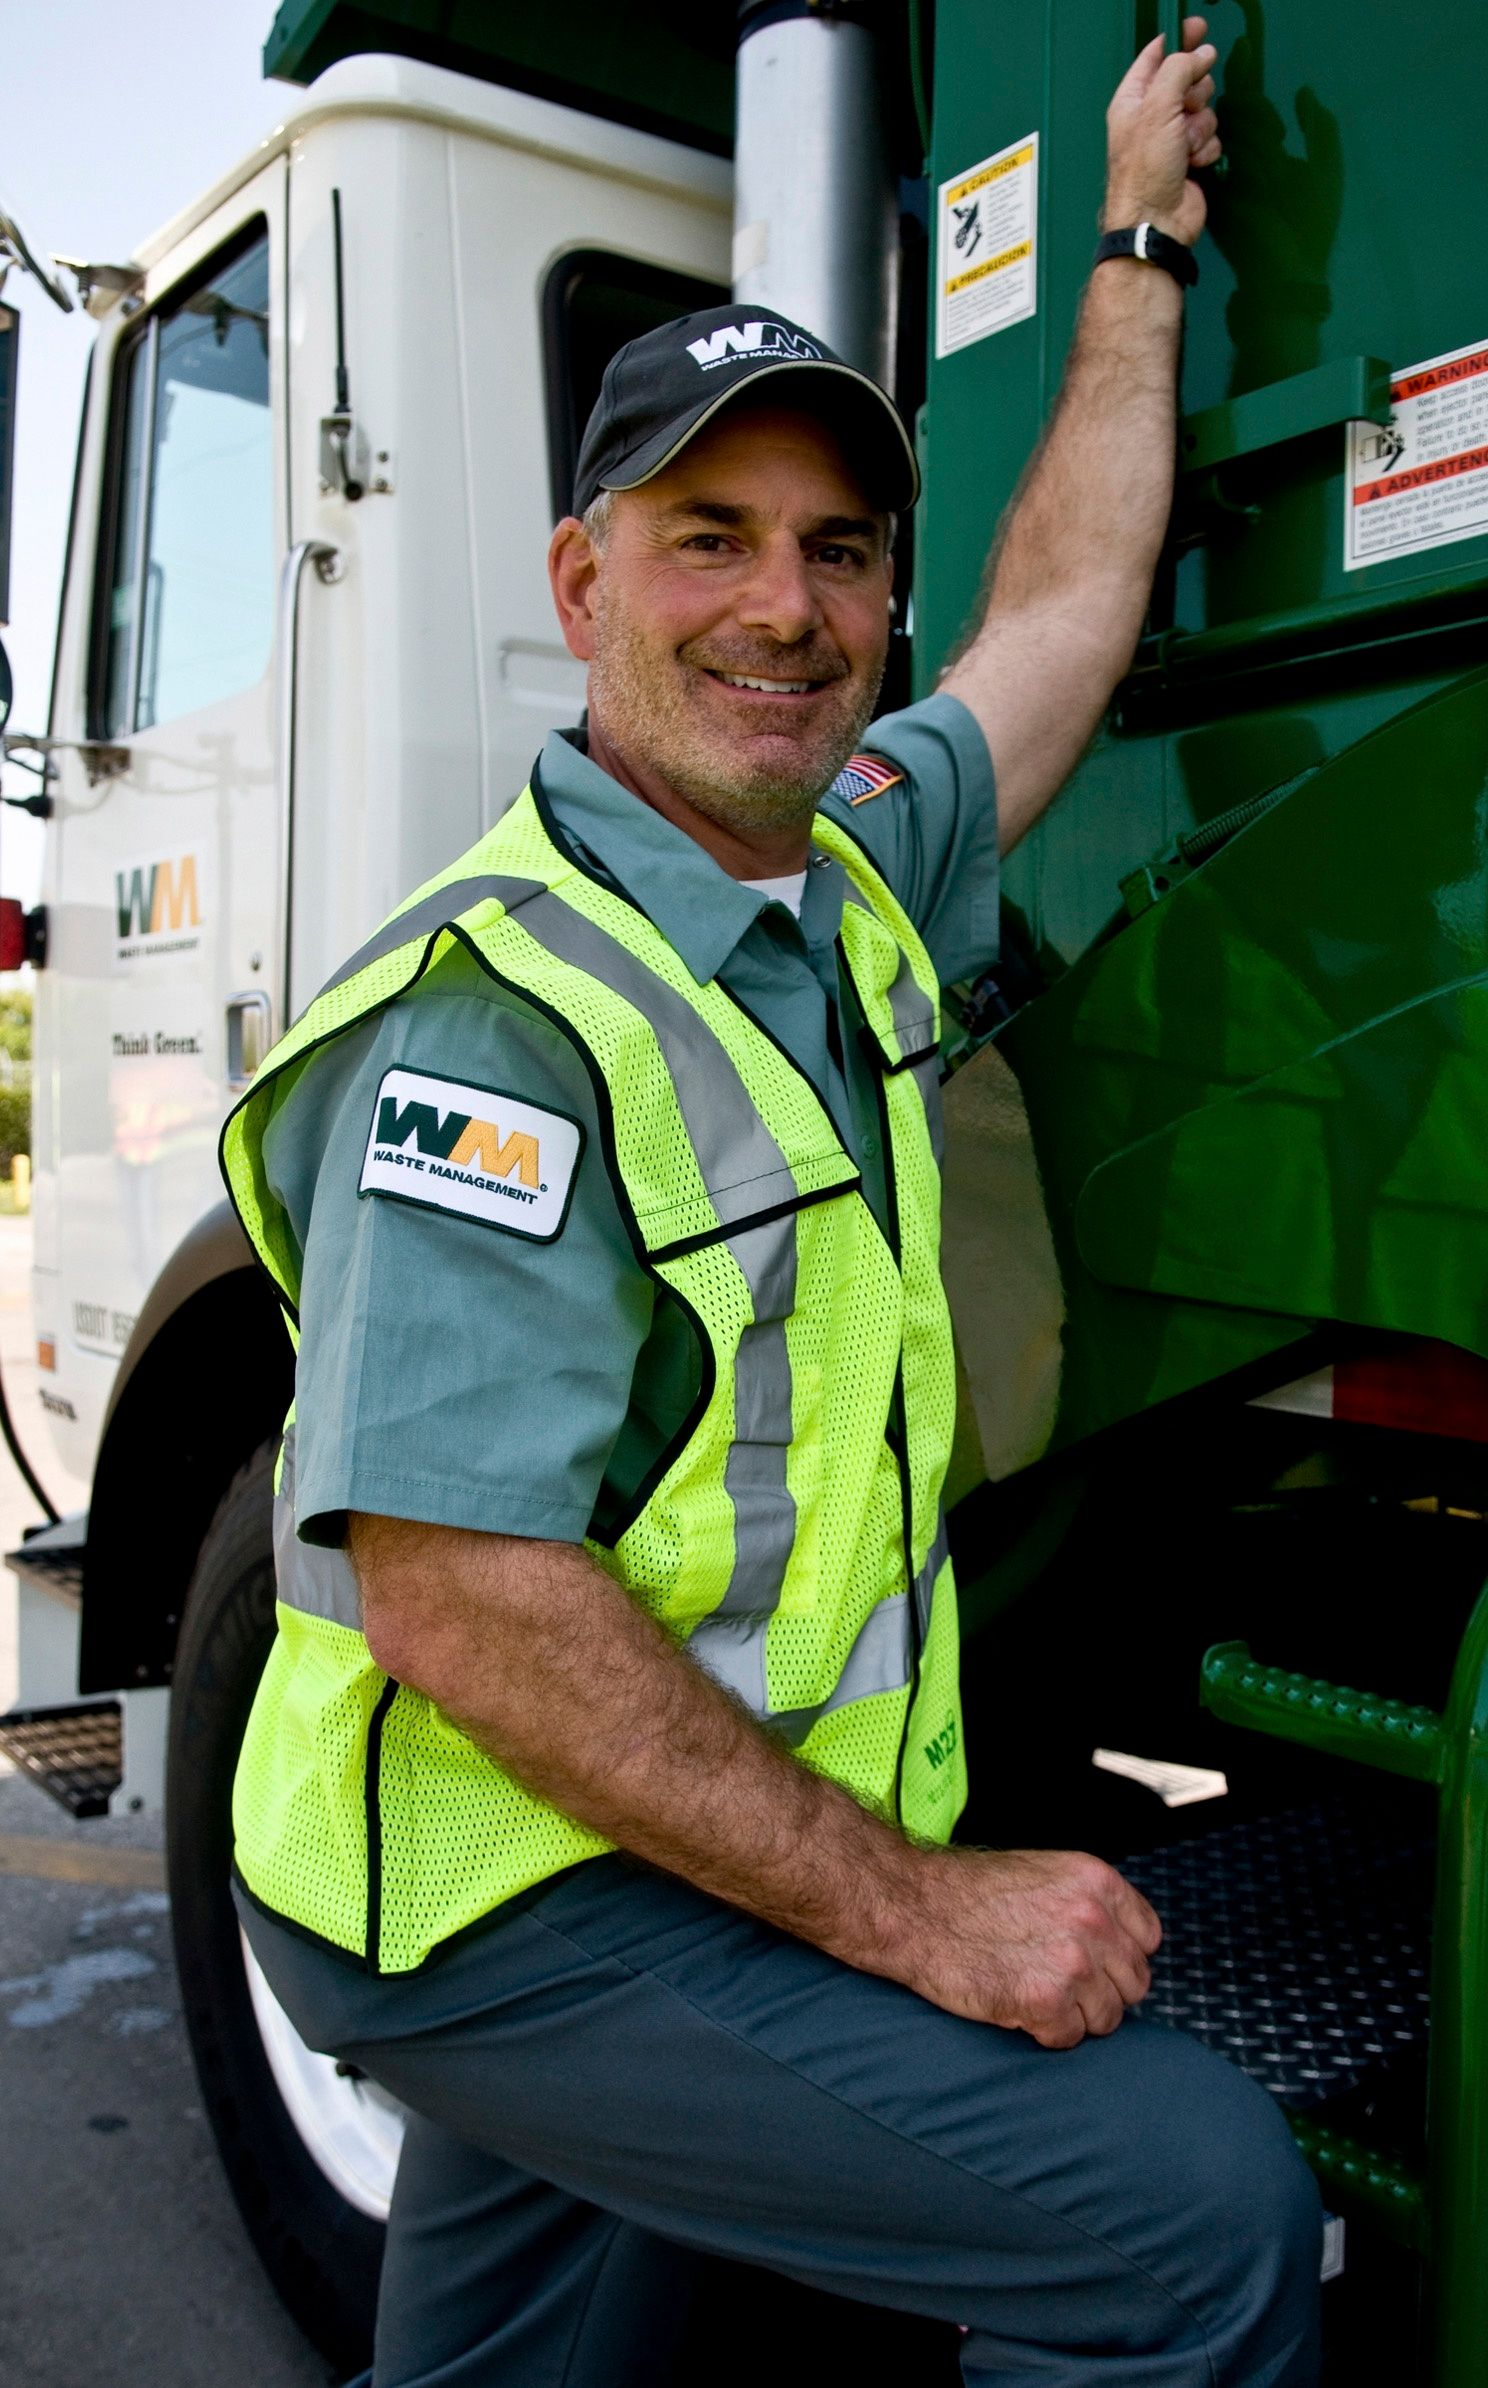 Waste Management COO Larry O'Donnell in uniform next to a truck